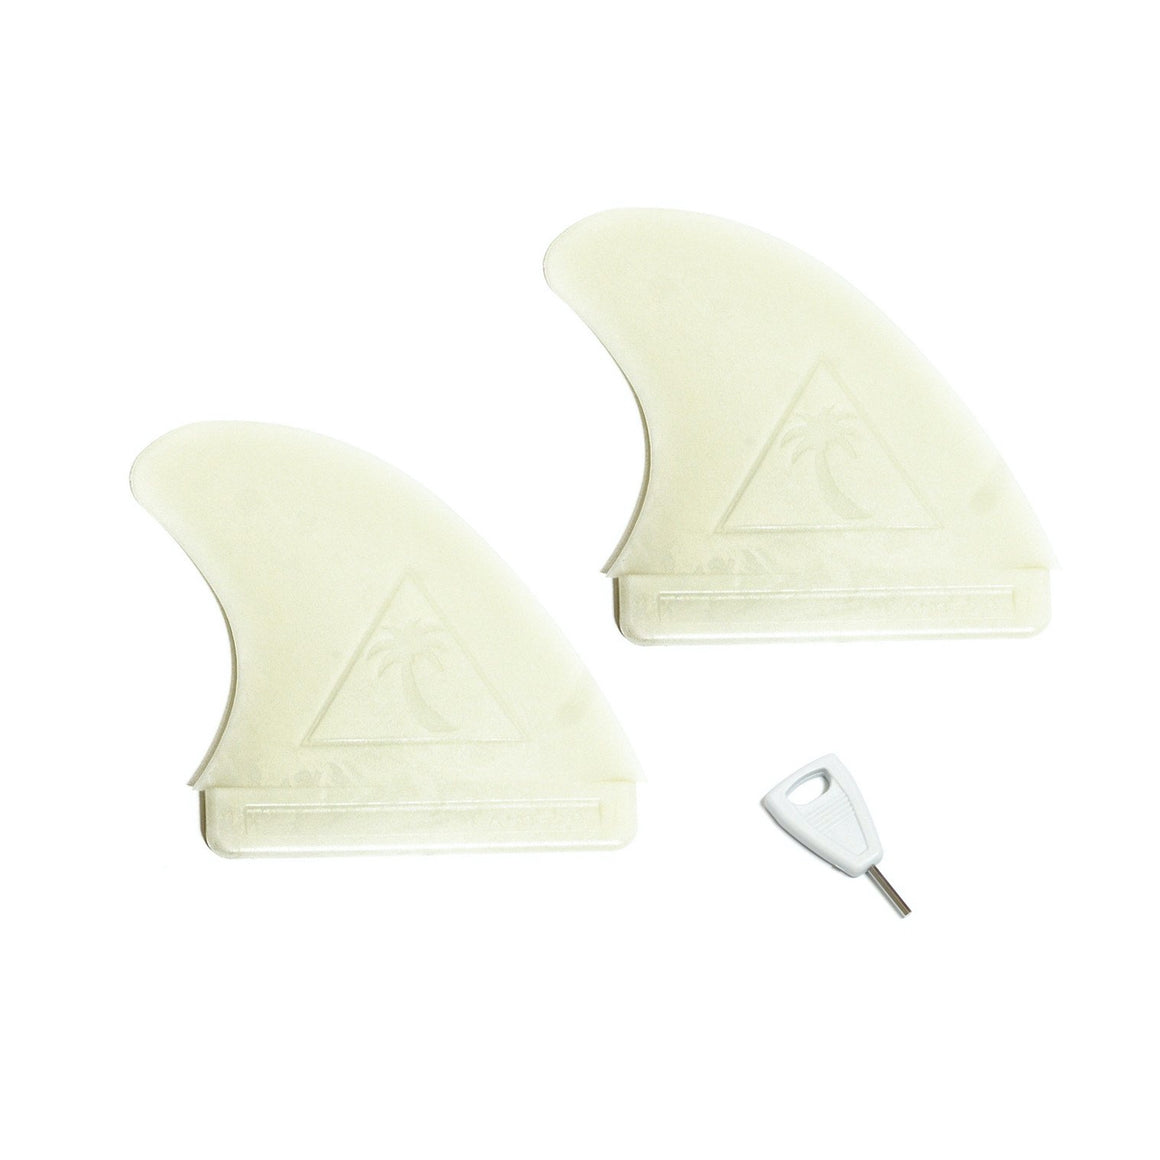 Catch Surf Fins - Hi-Perf Side Bite Fin Set